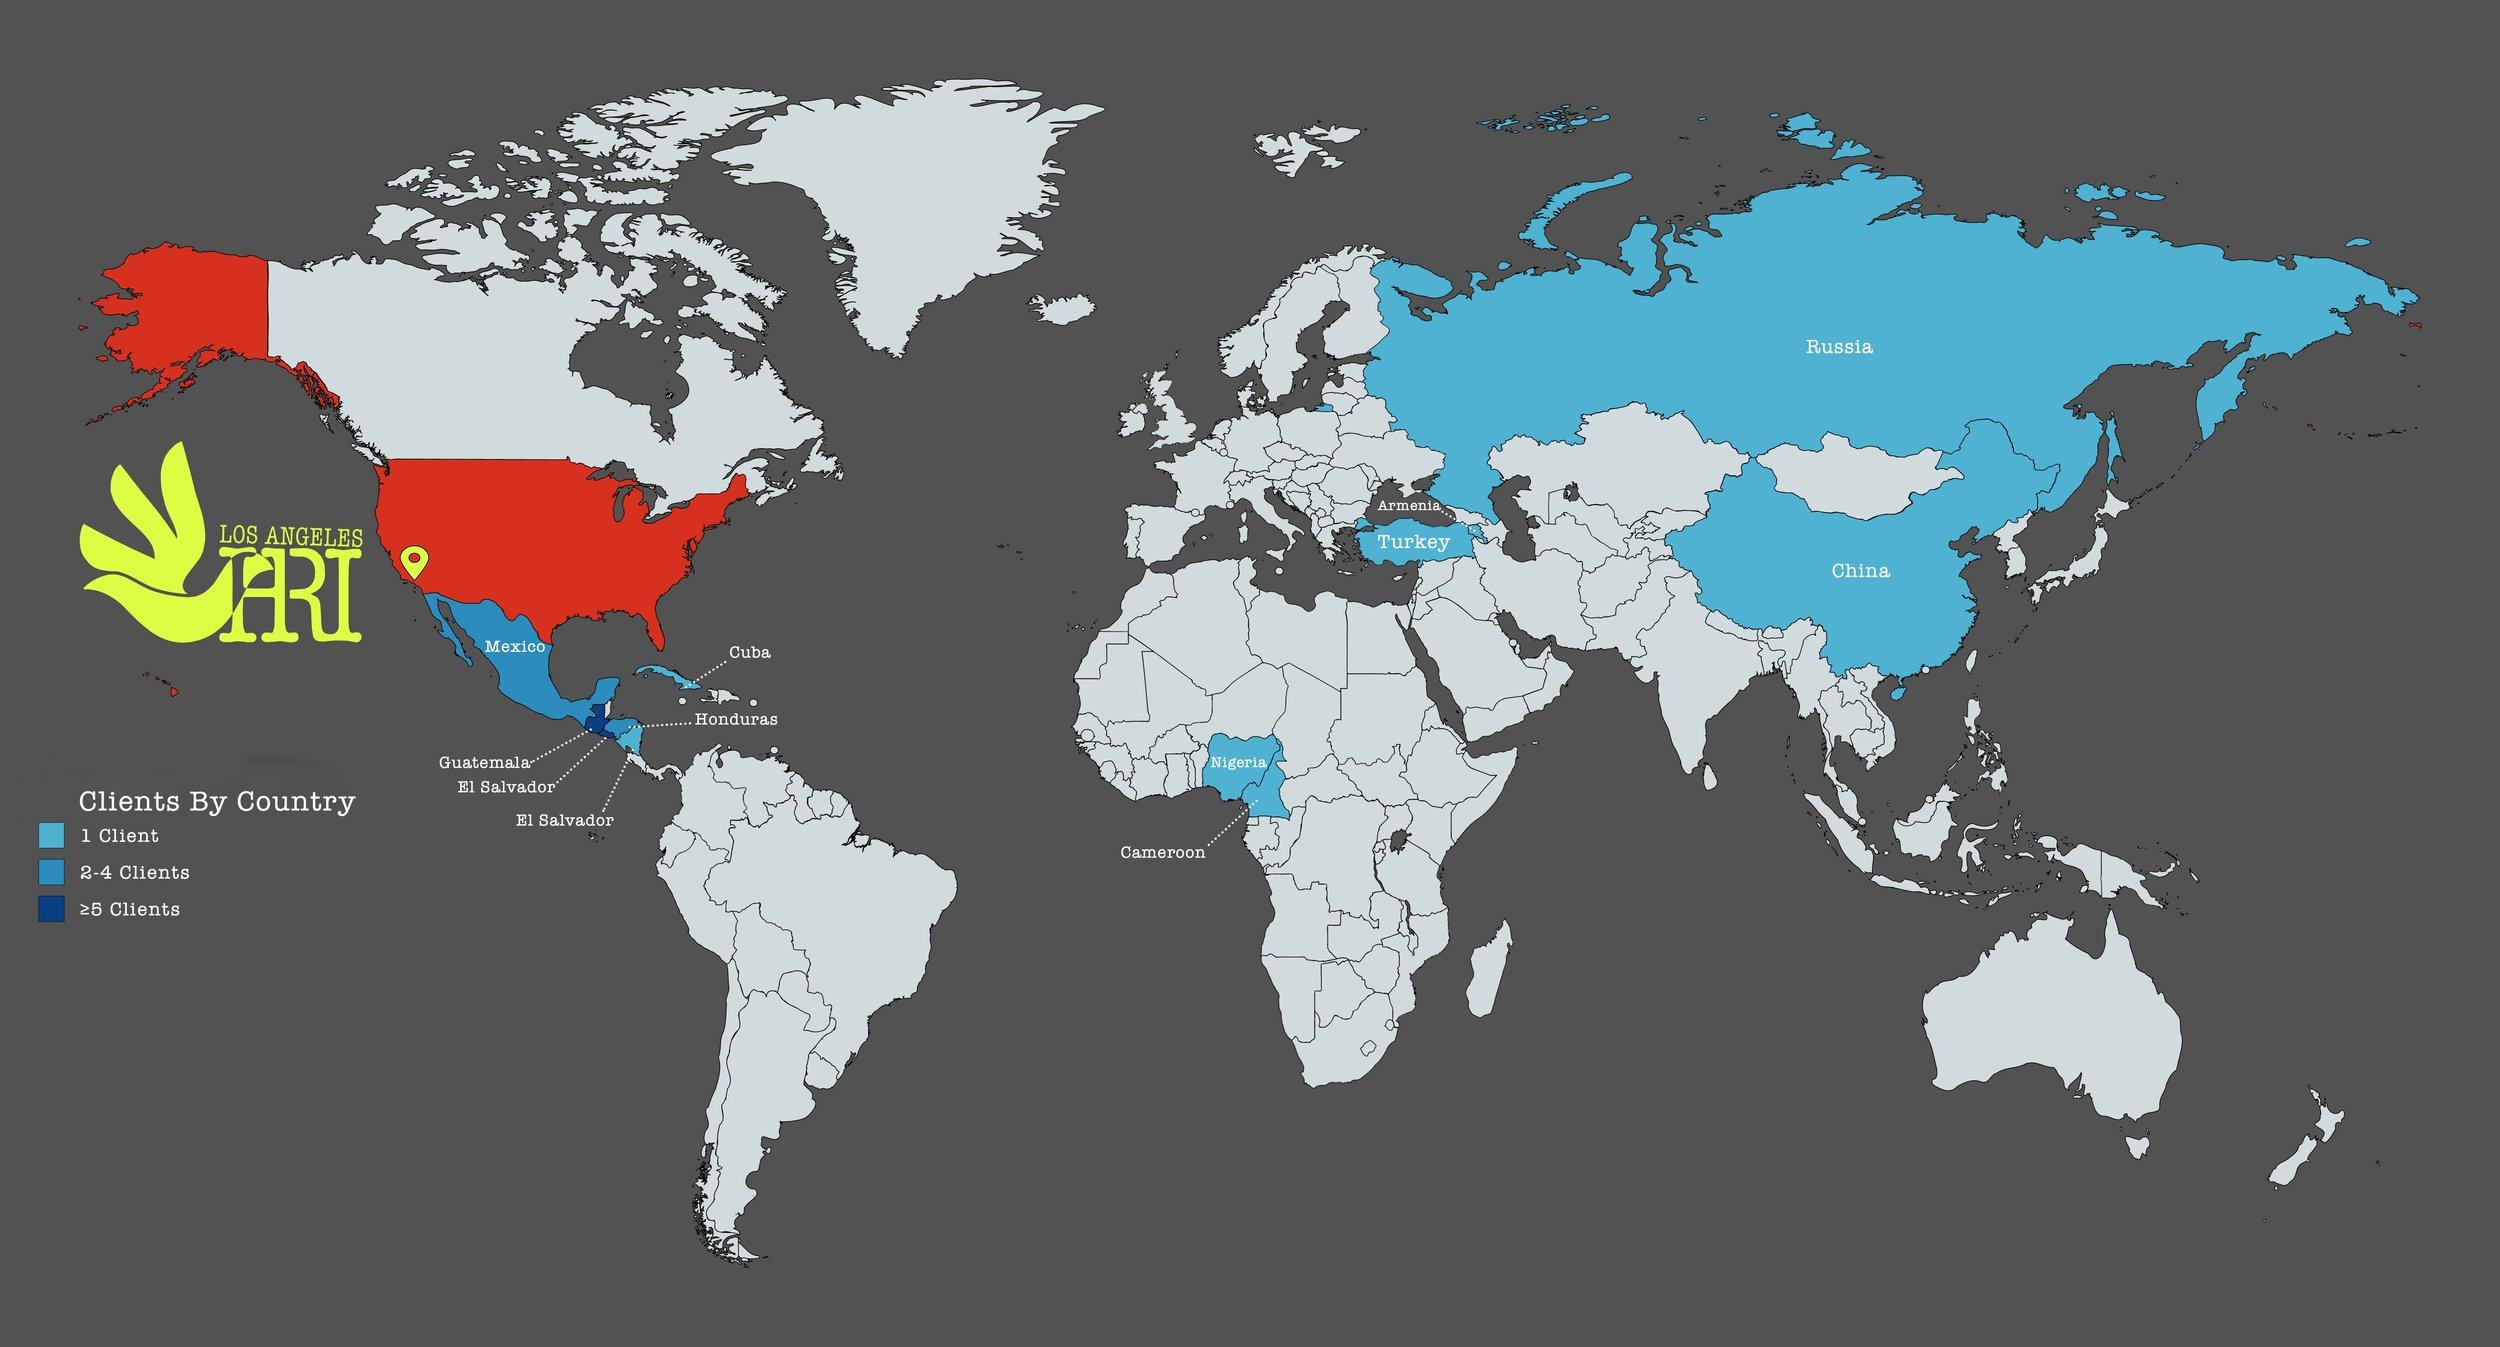 clients by country